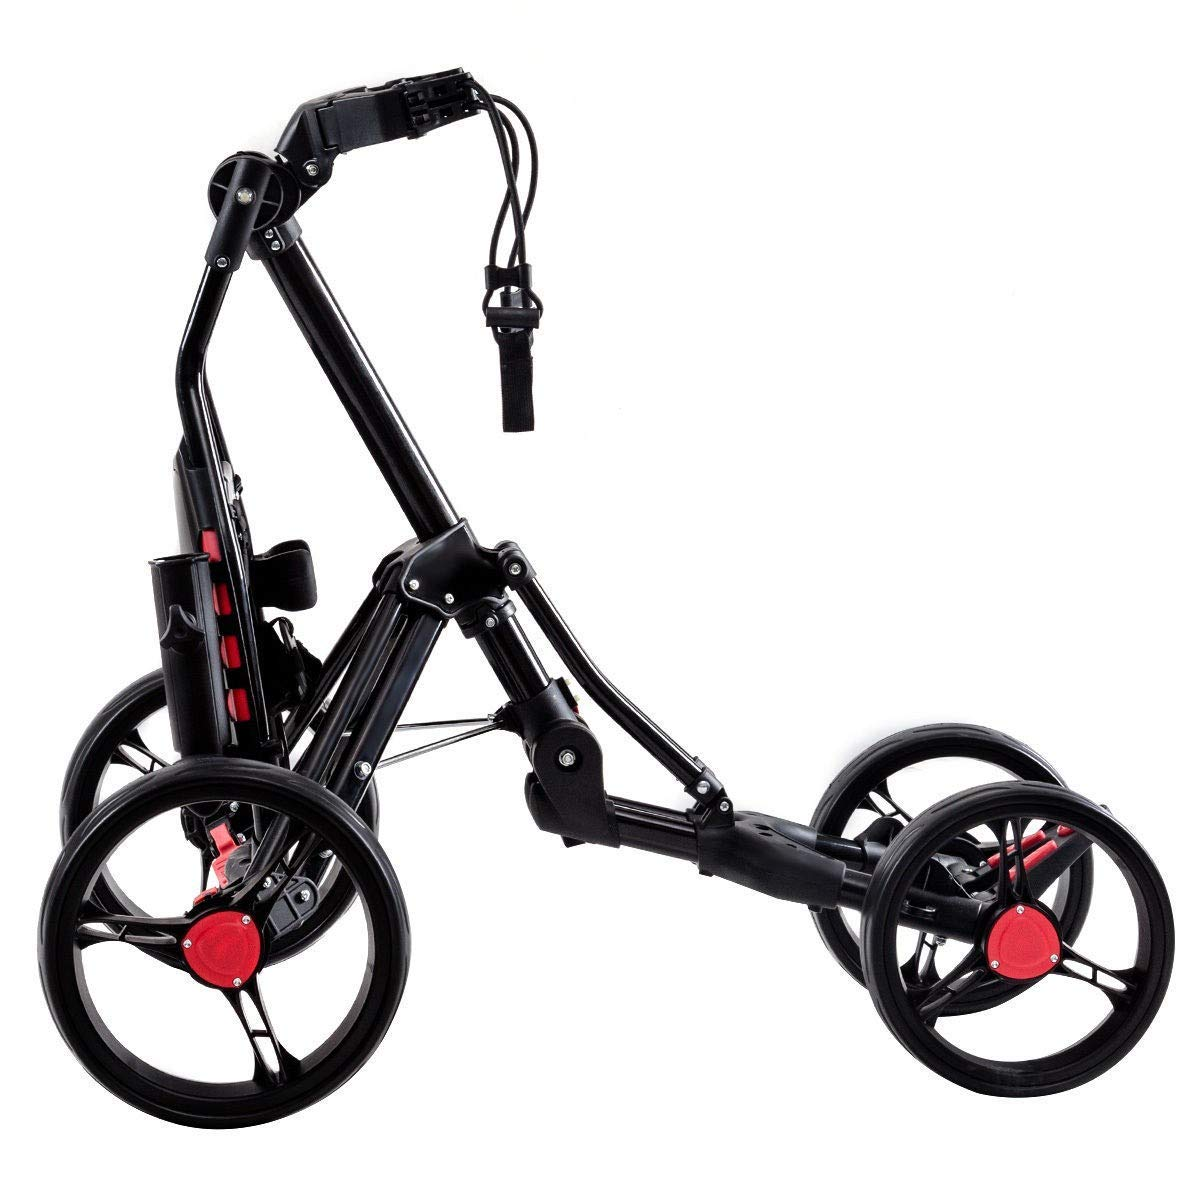 BeUniqueToday Folding 4 Wheels Golf Pull Push Cart Trolley, Golf Pull Push Cart Trolley with Strong Aluminum Frame and Weighs Less Than 15 lbs, Adjustable Golf Pull Push Cart Trolley